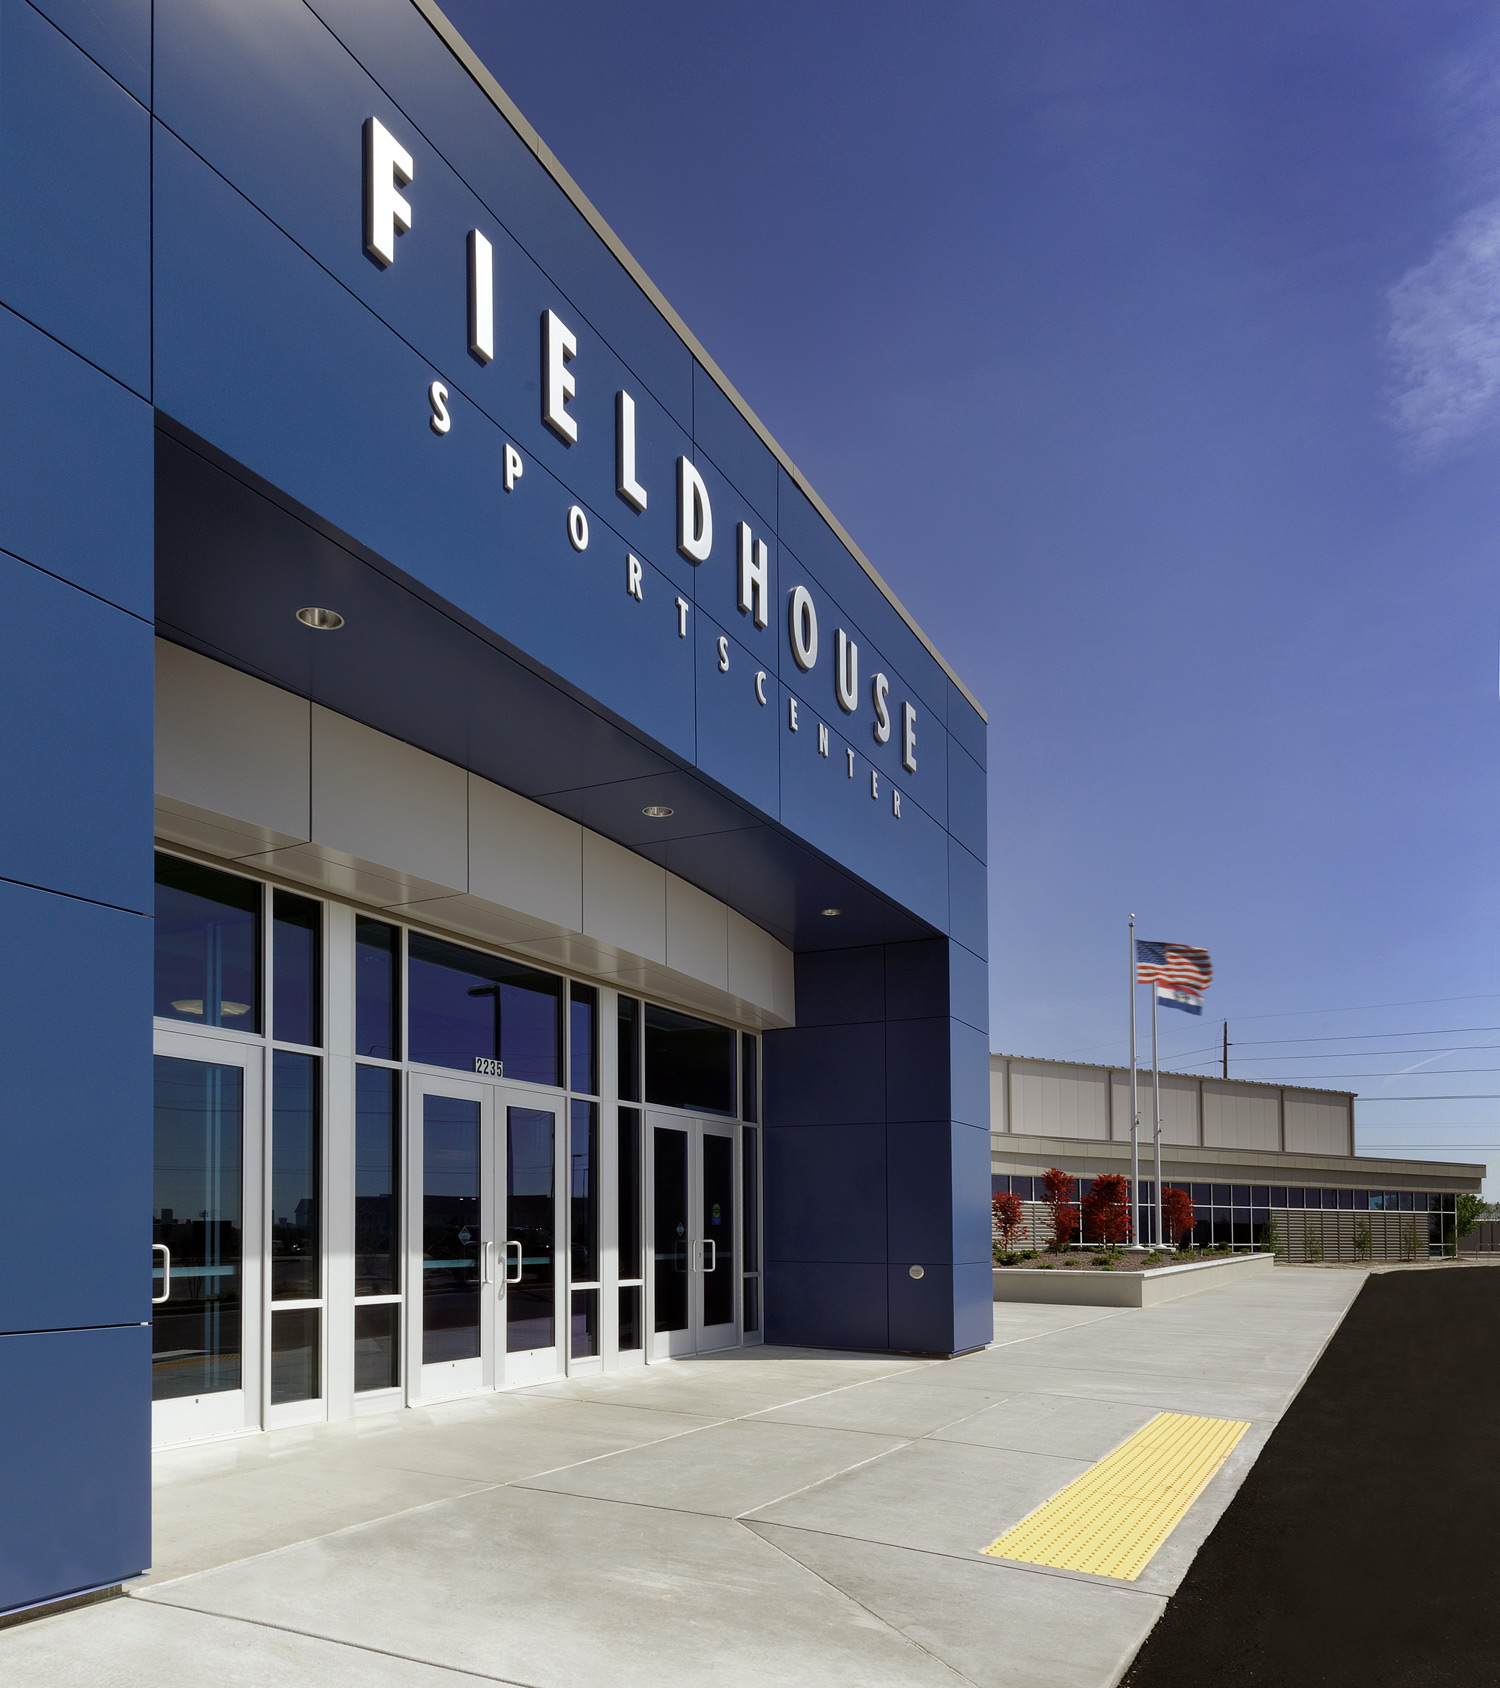 Fieldhouse-Sportscenter-H-Design-Exterior-01.jpg